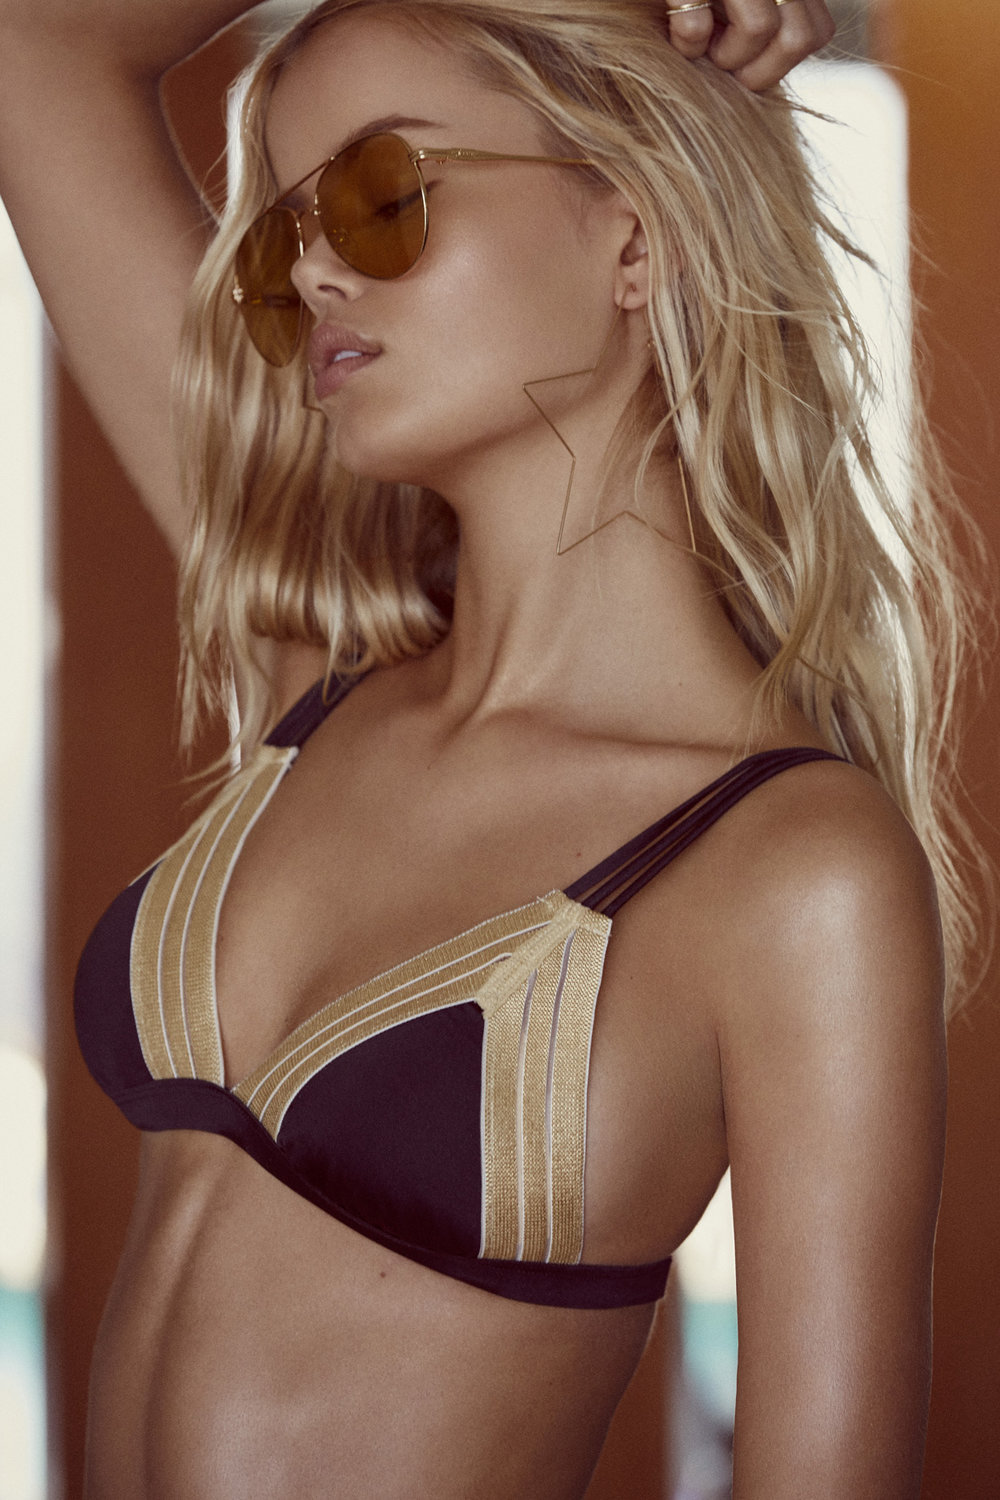 Beach Bunny Sheer Addiction Black & Gold Triangle Top